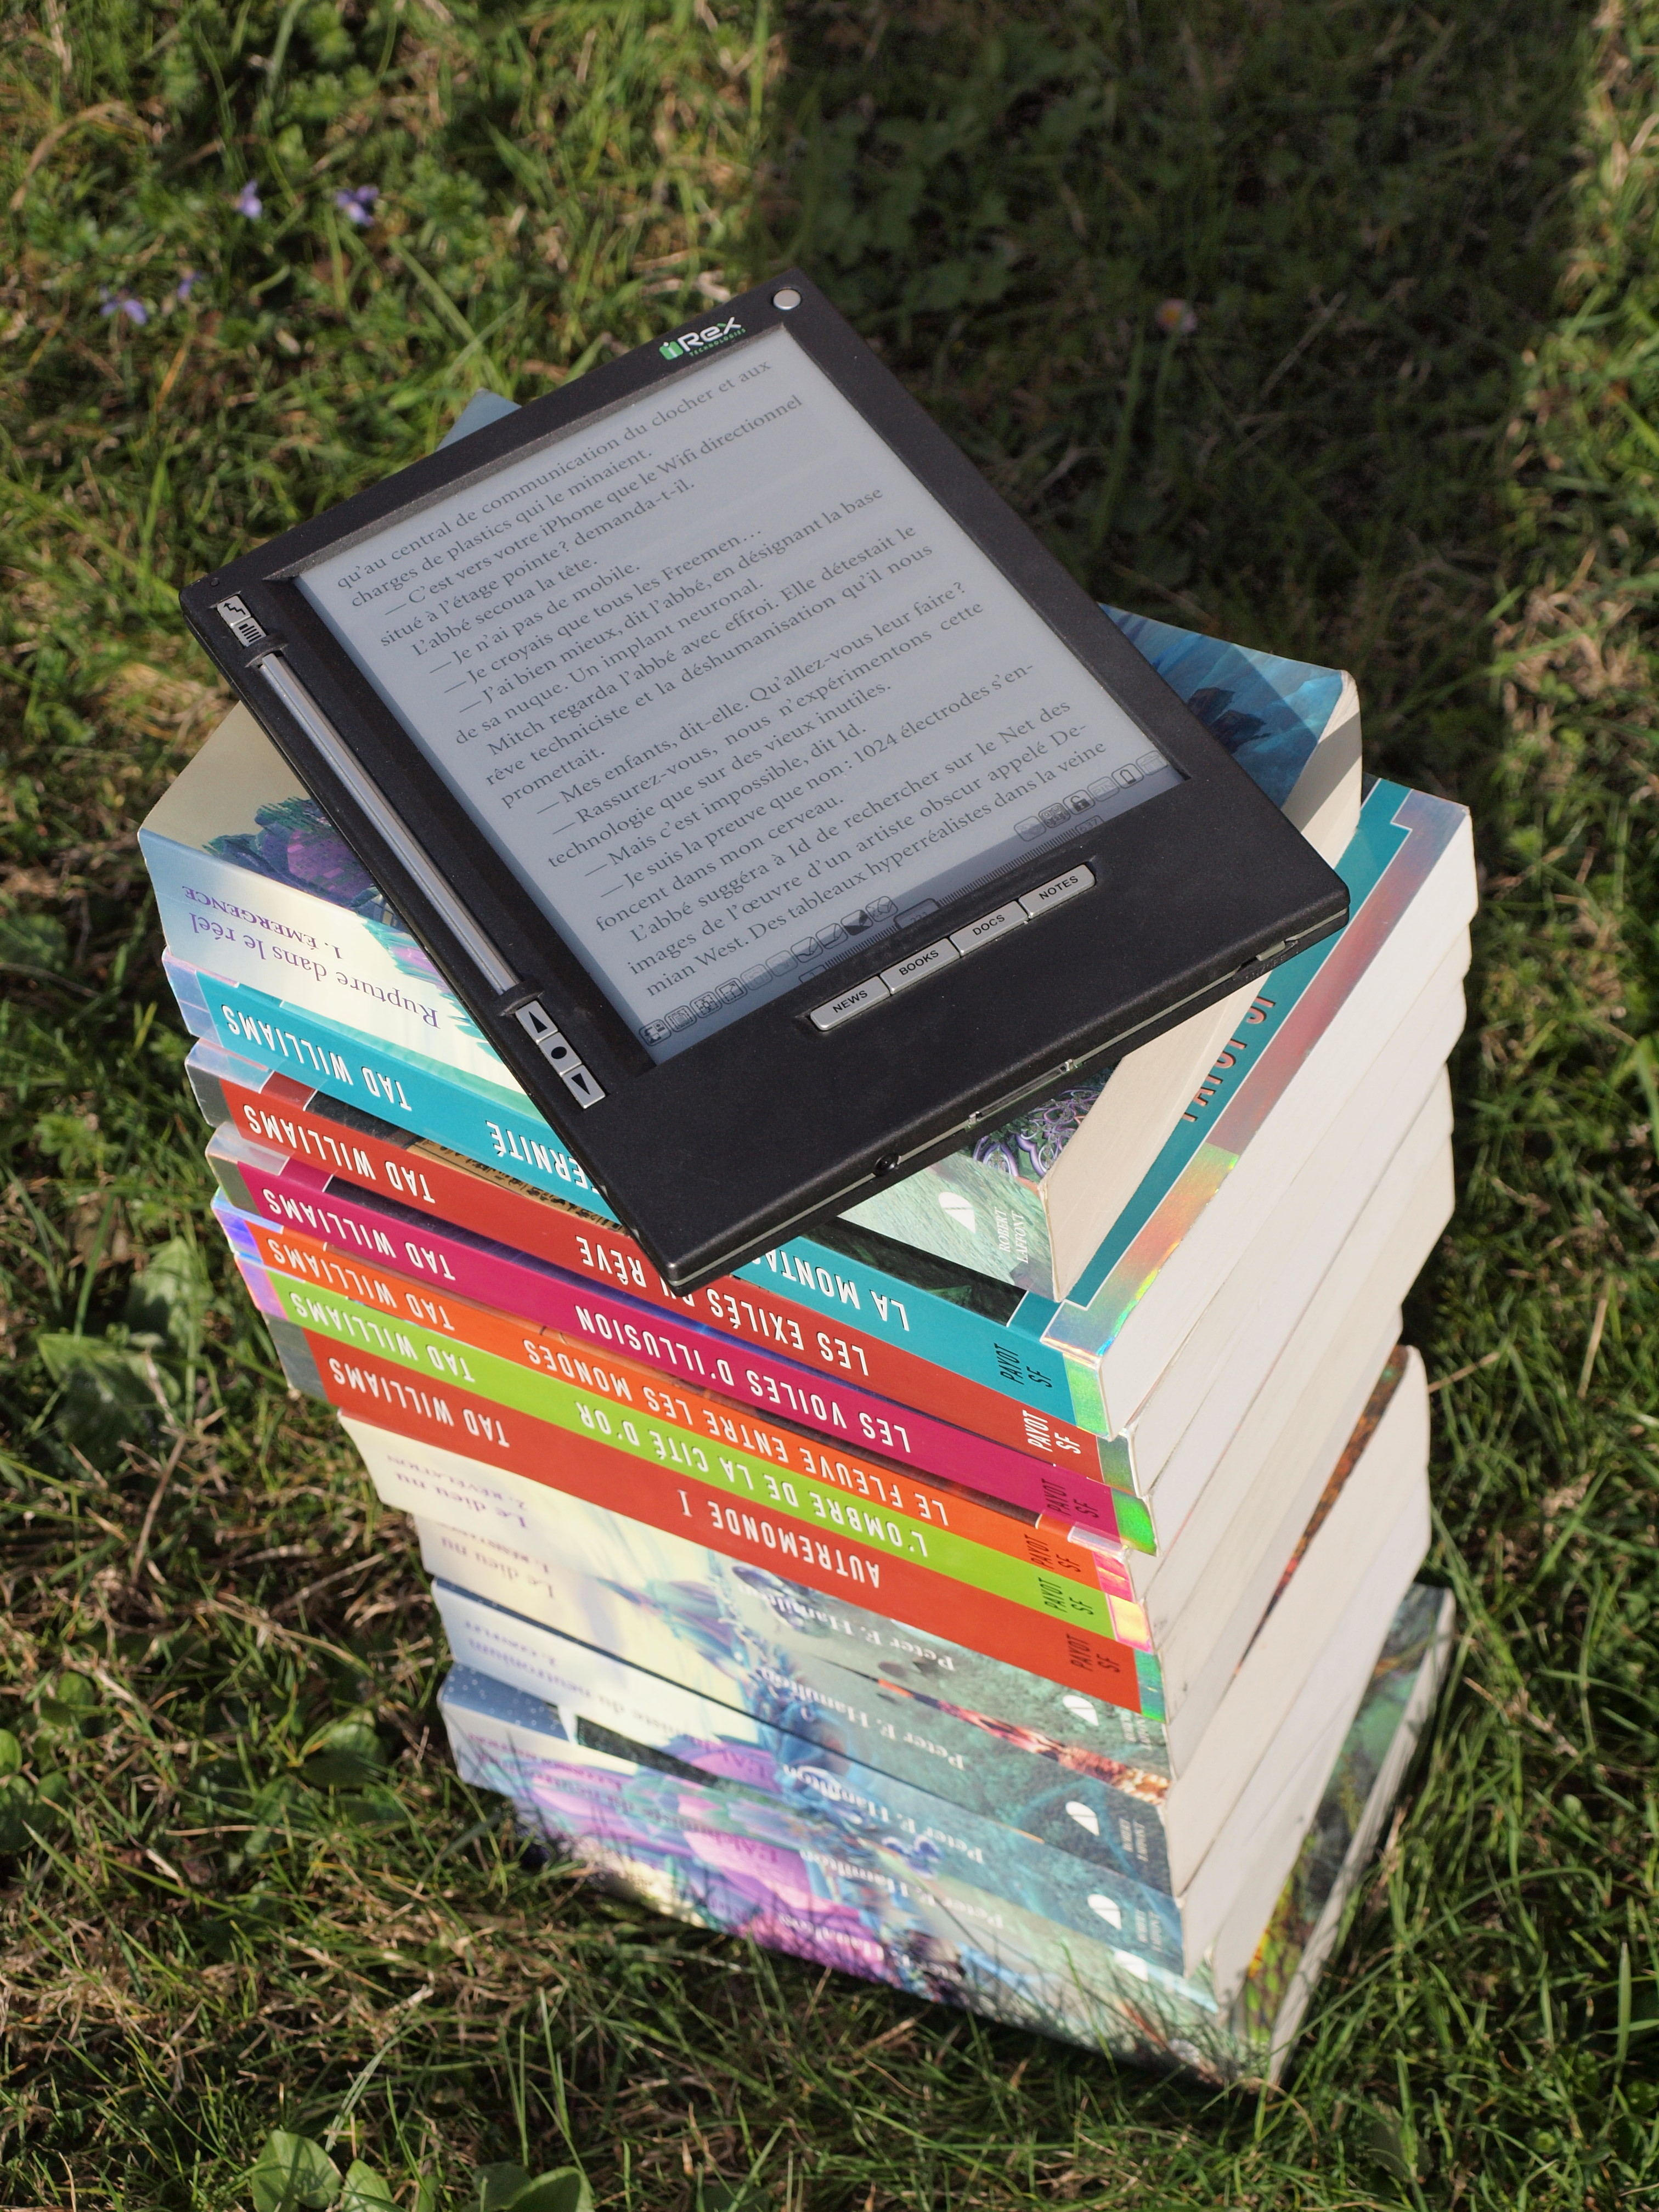 e-reader and print books